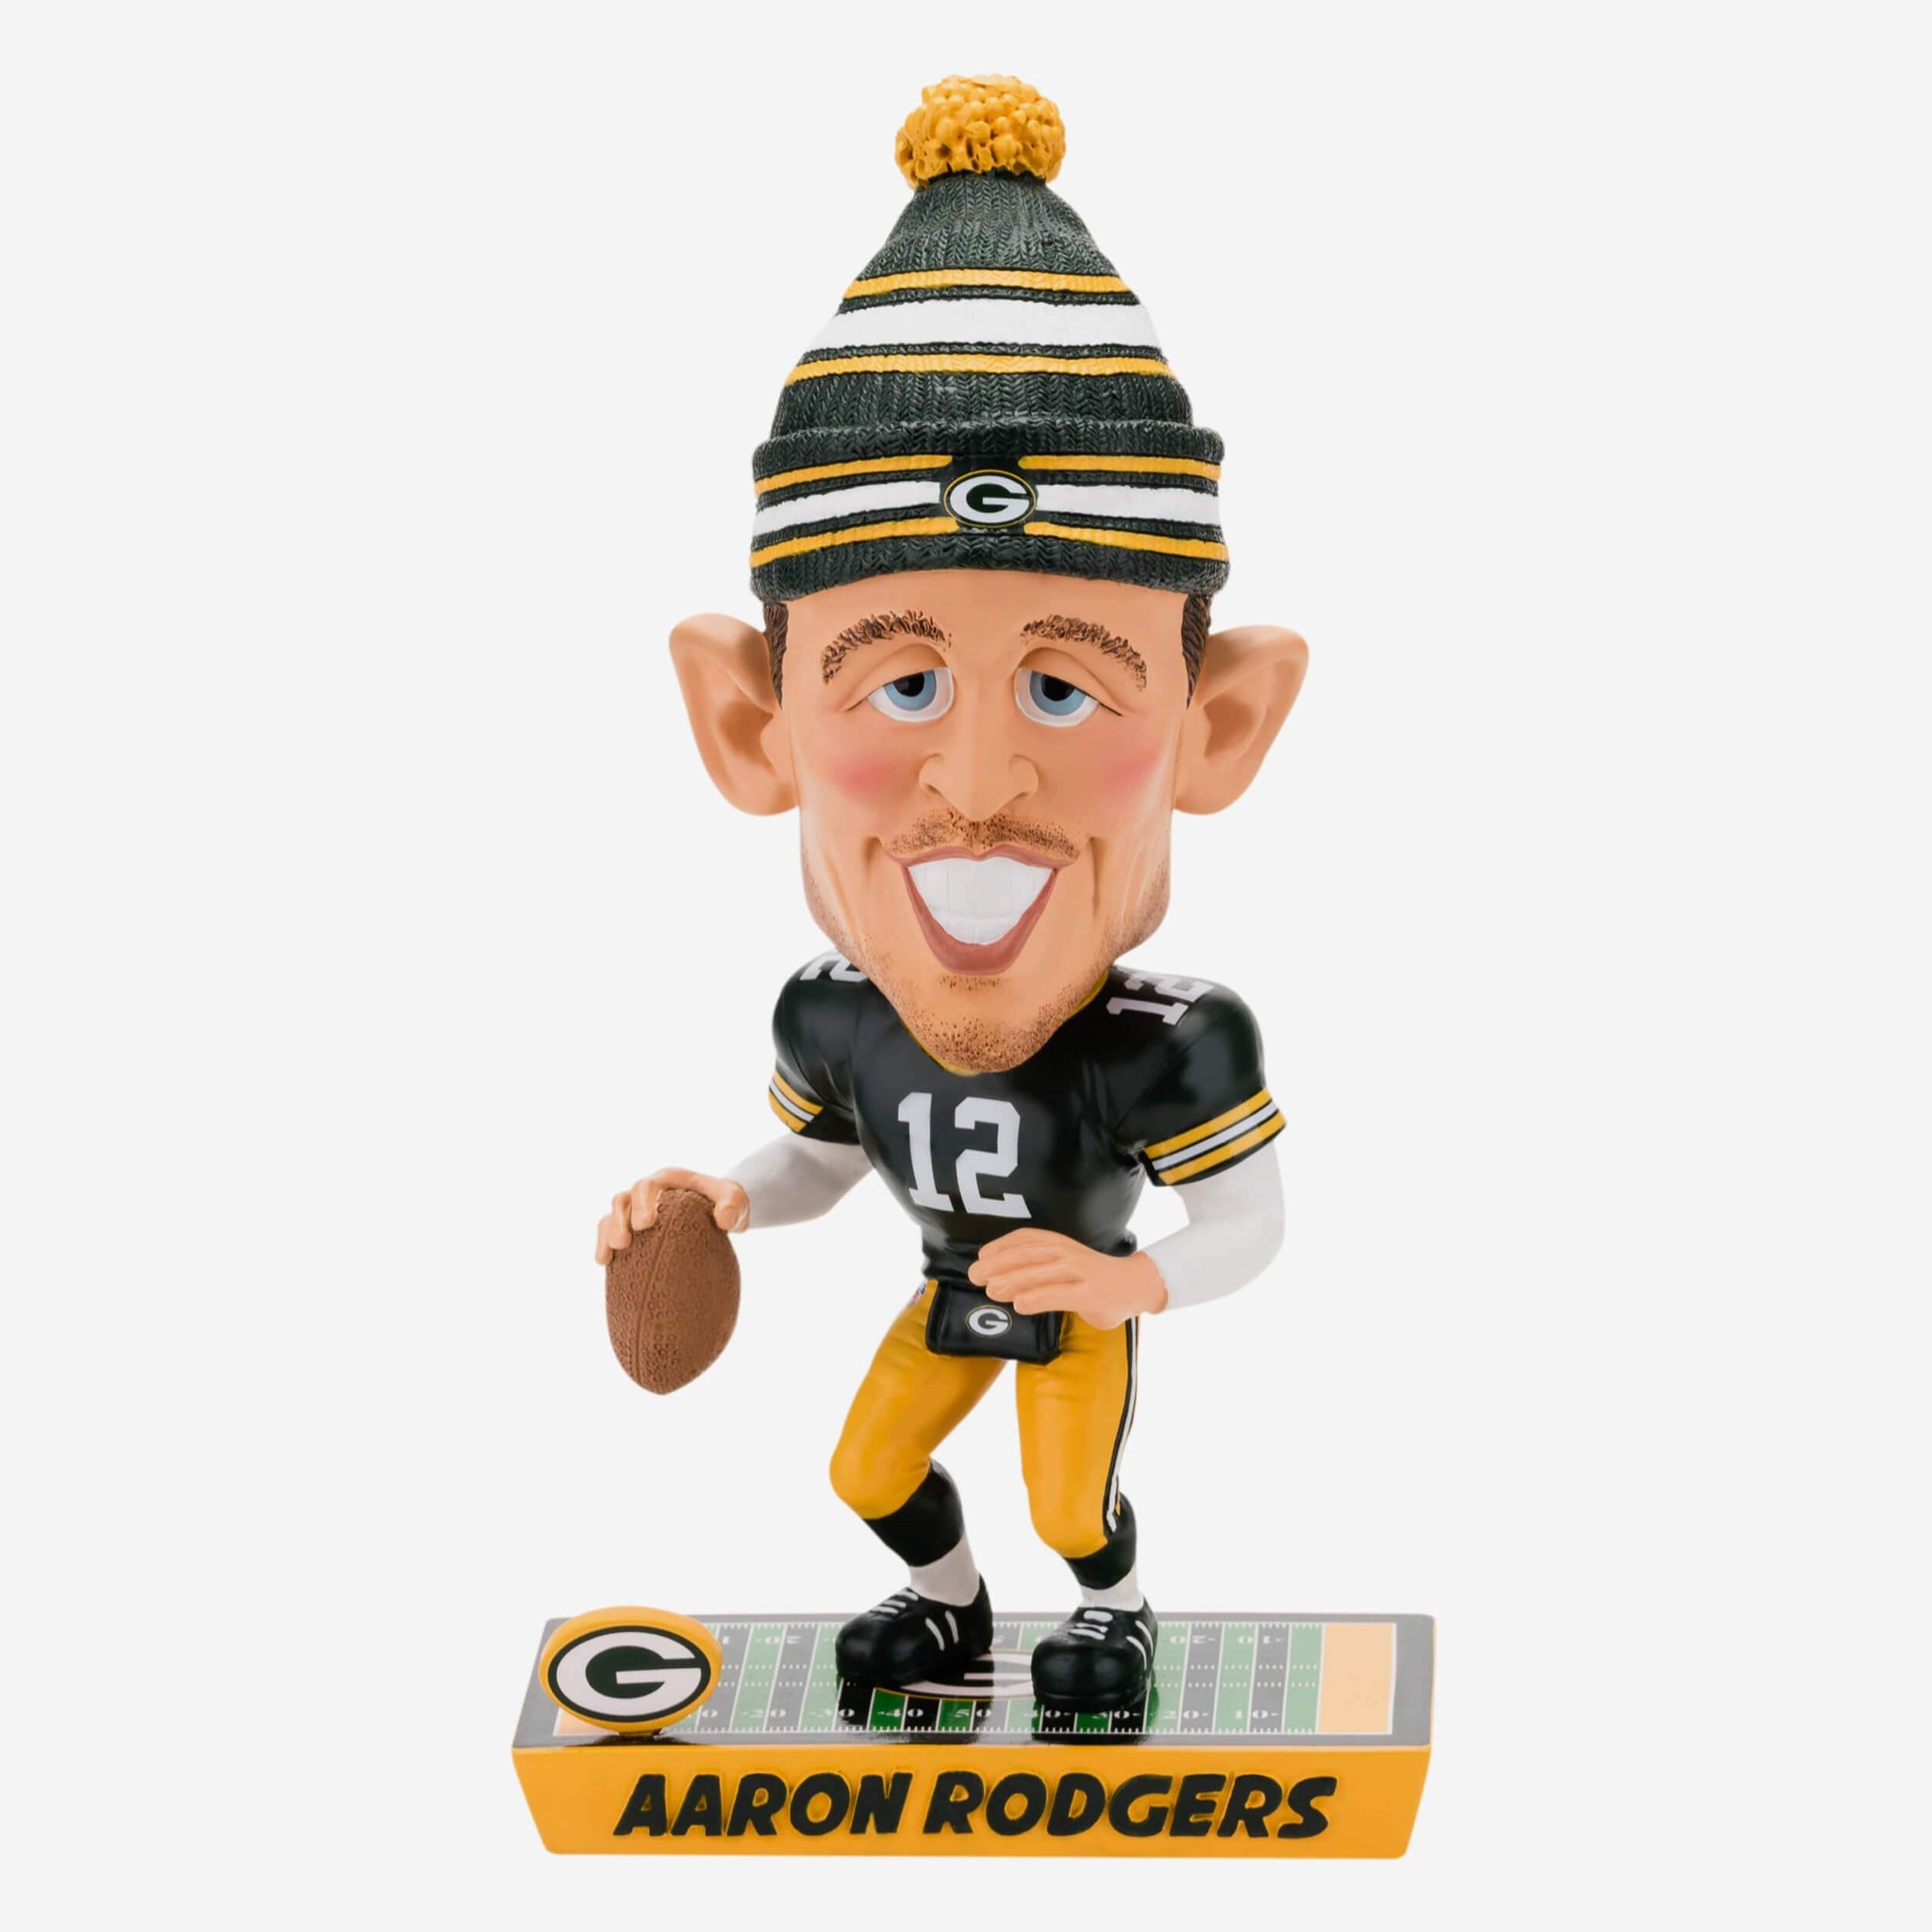 Aaron Rodgers Green Bay Packers Caricature Bobblehead FOCO - FOCO.com